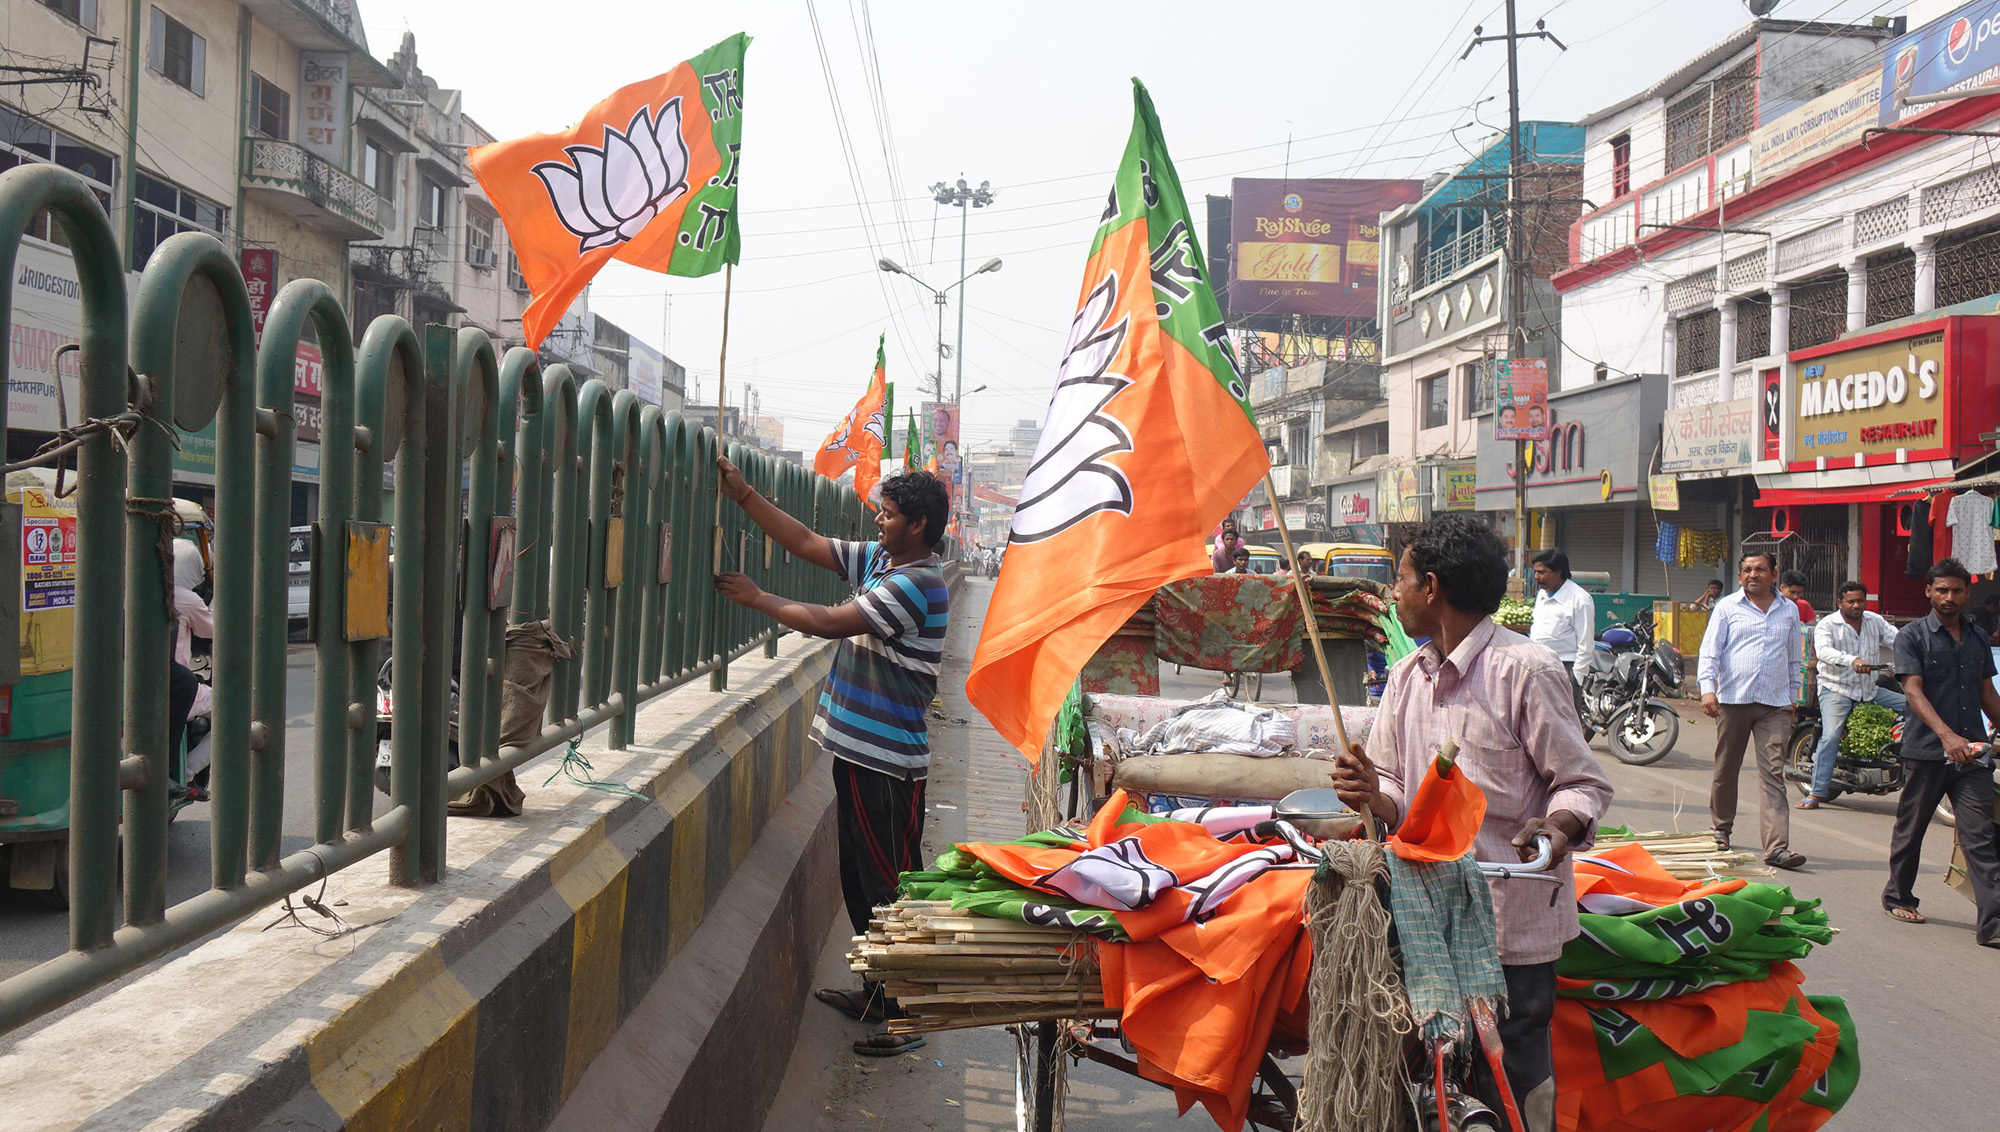 BJP workers cover the Uttar Pradesh town of Gorakhpur with the flags of their party, March 24, 2017. (M. Hussain/VOA)